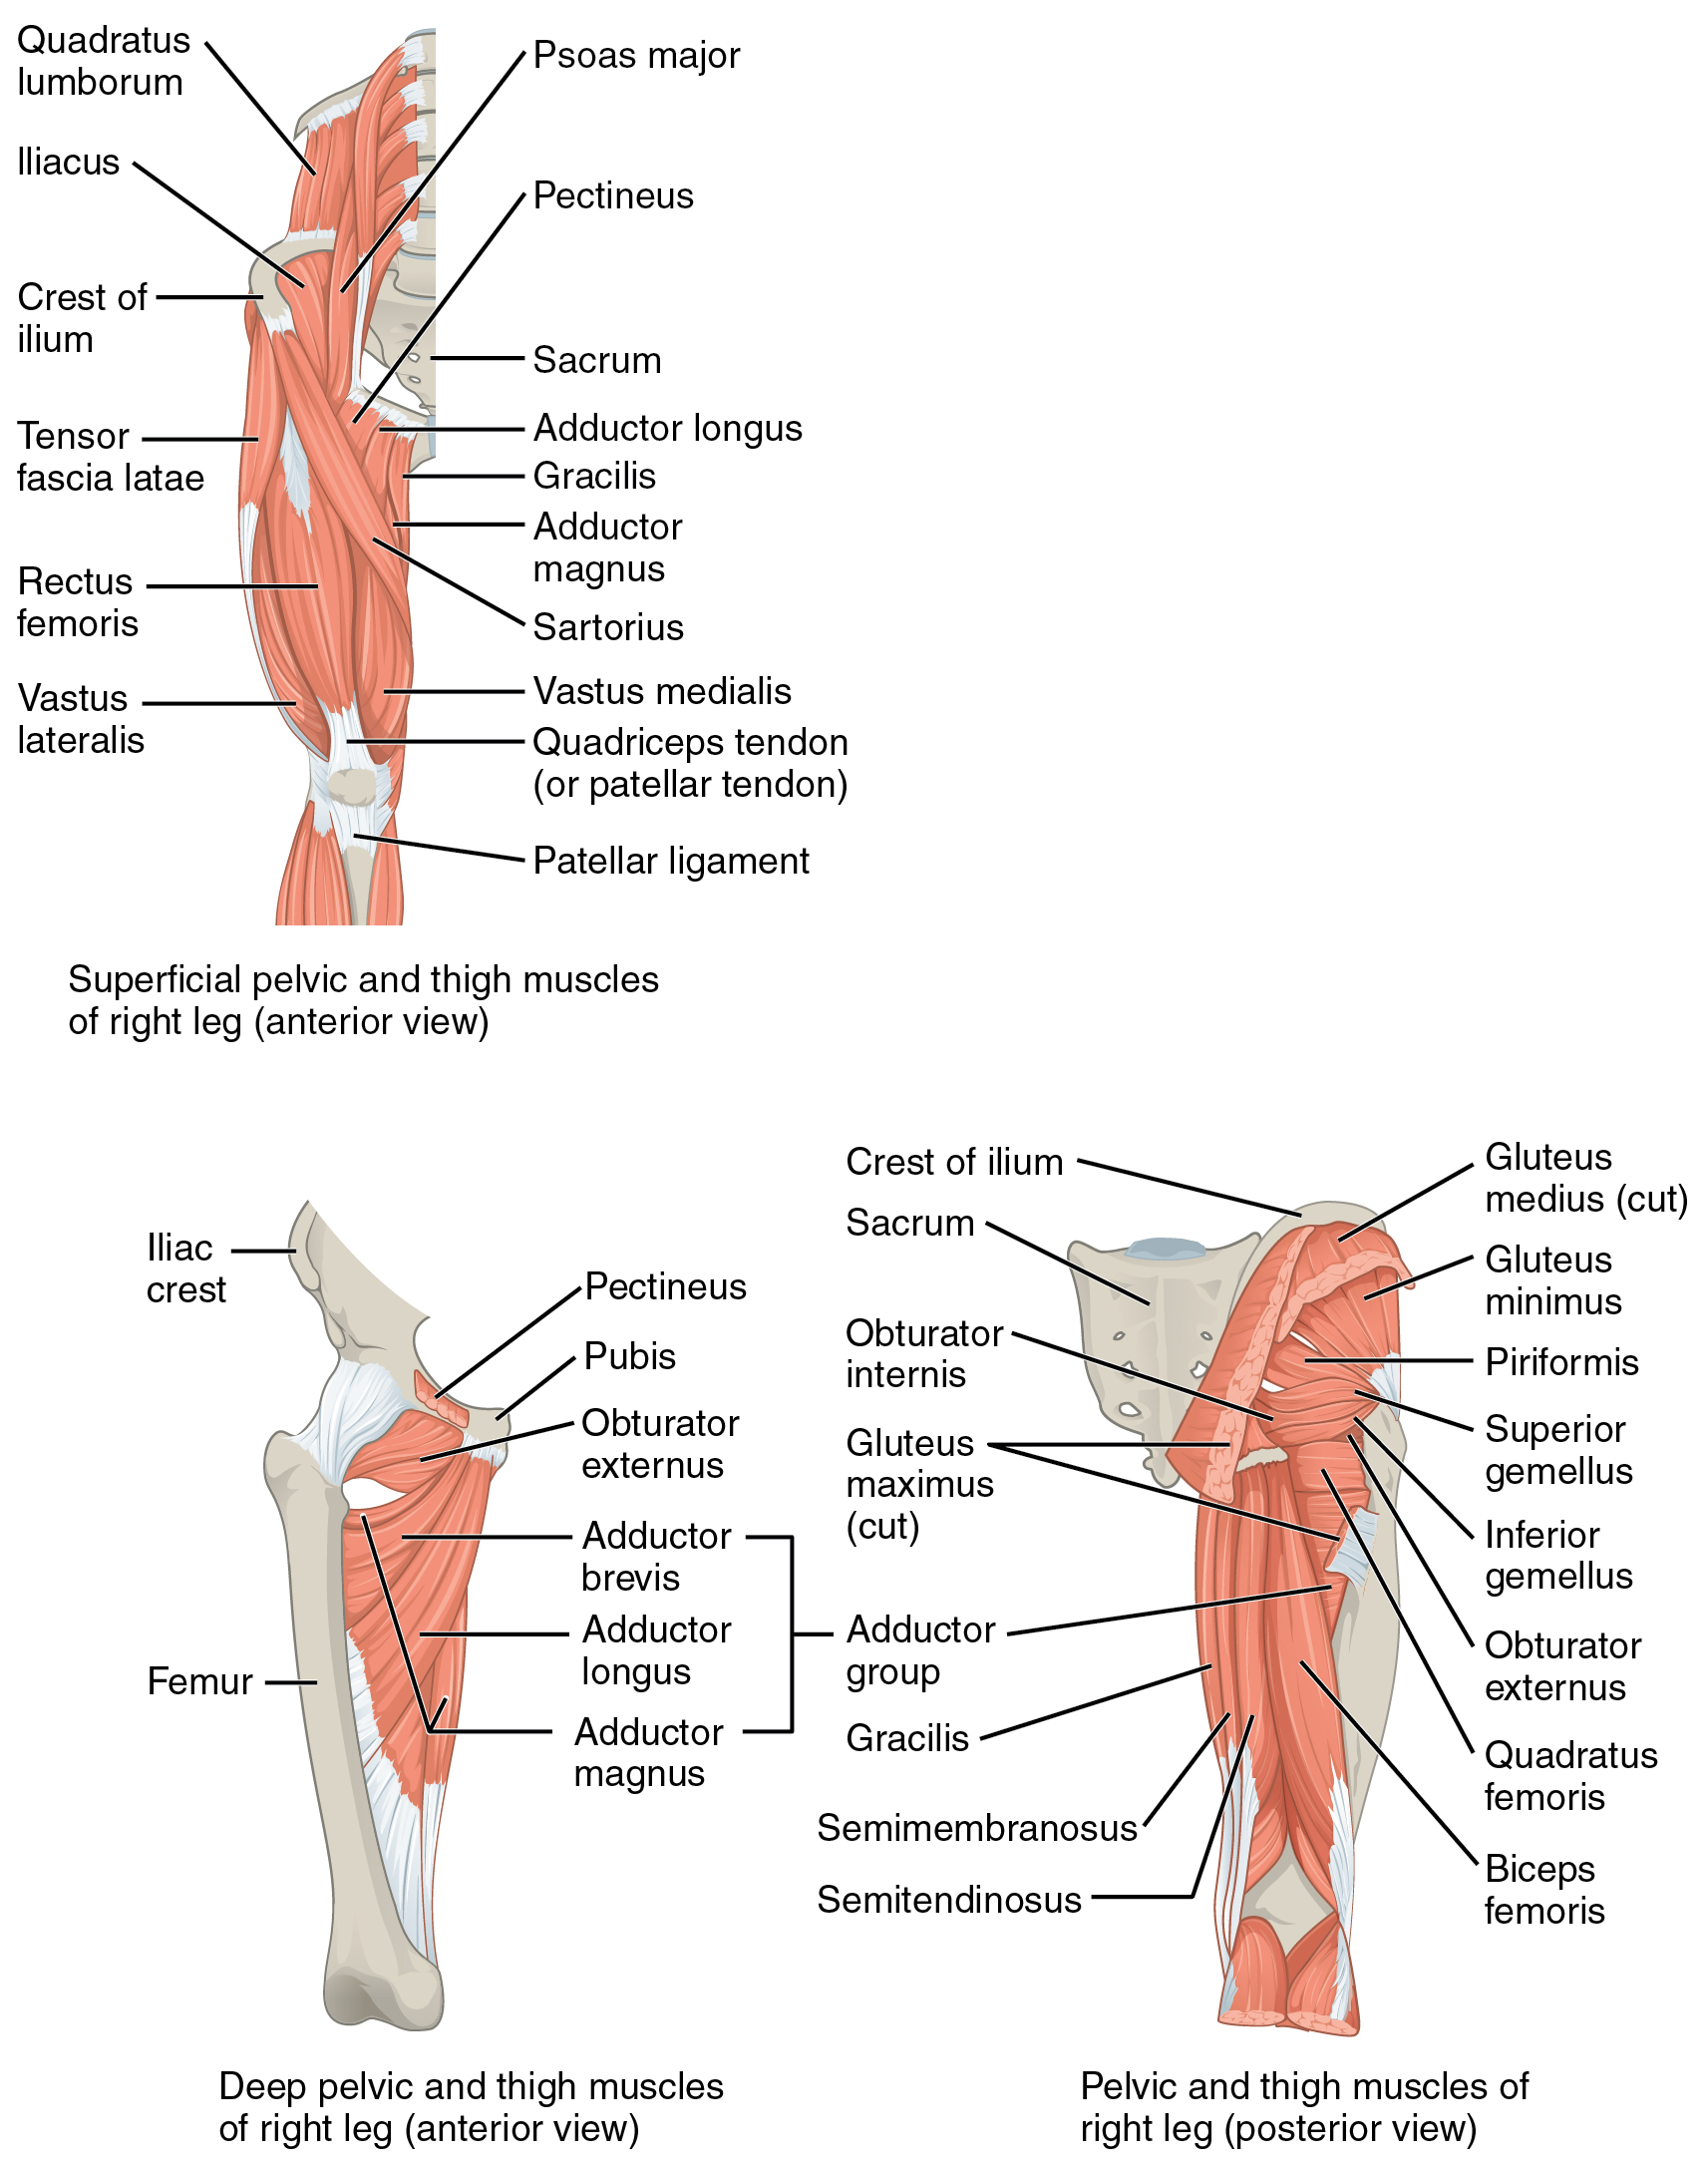 Cow Hoof Muscular System Diagram - DIY Enthusiasts Wiring Diagrams •